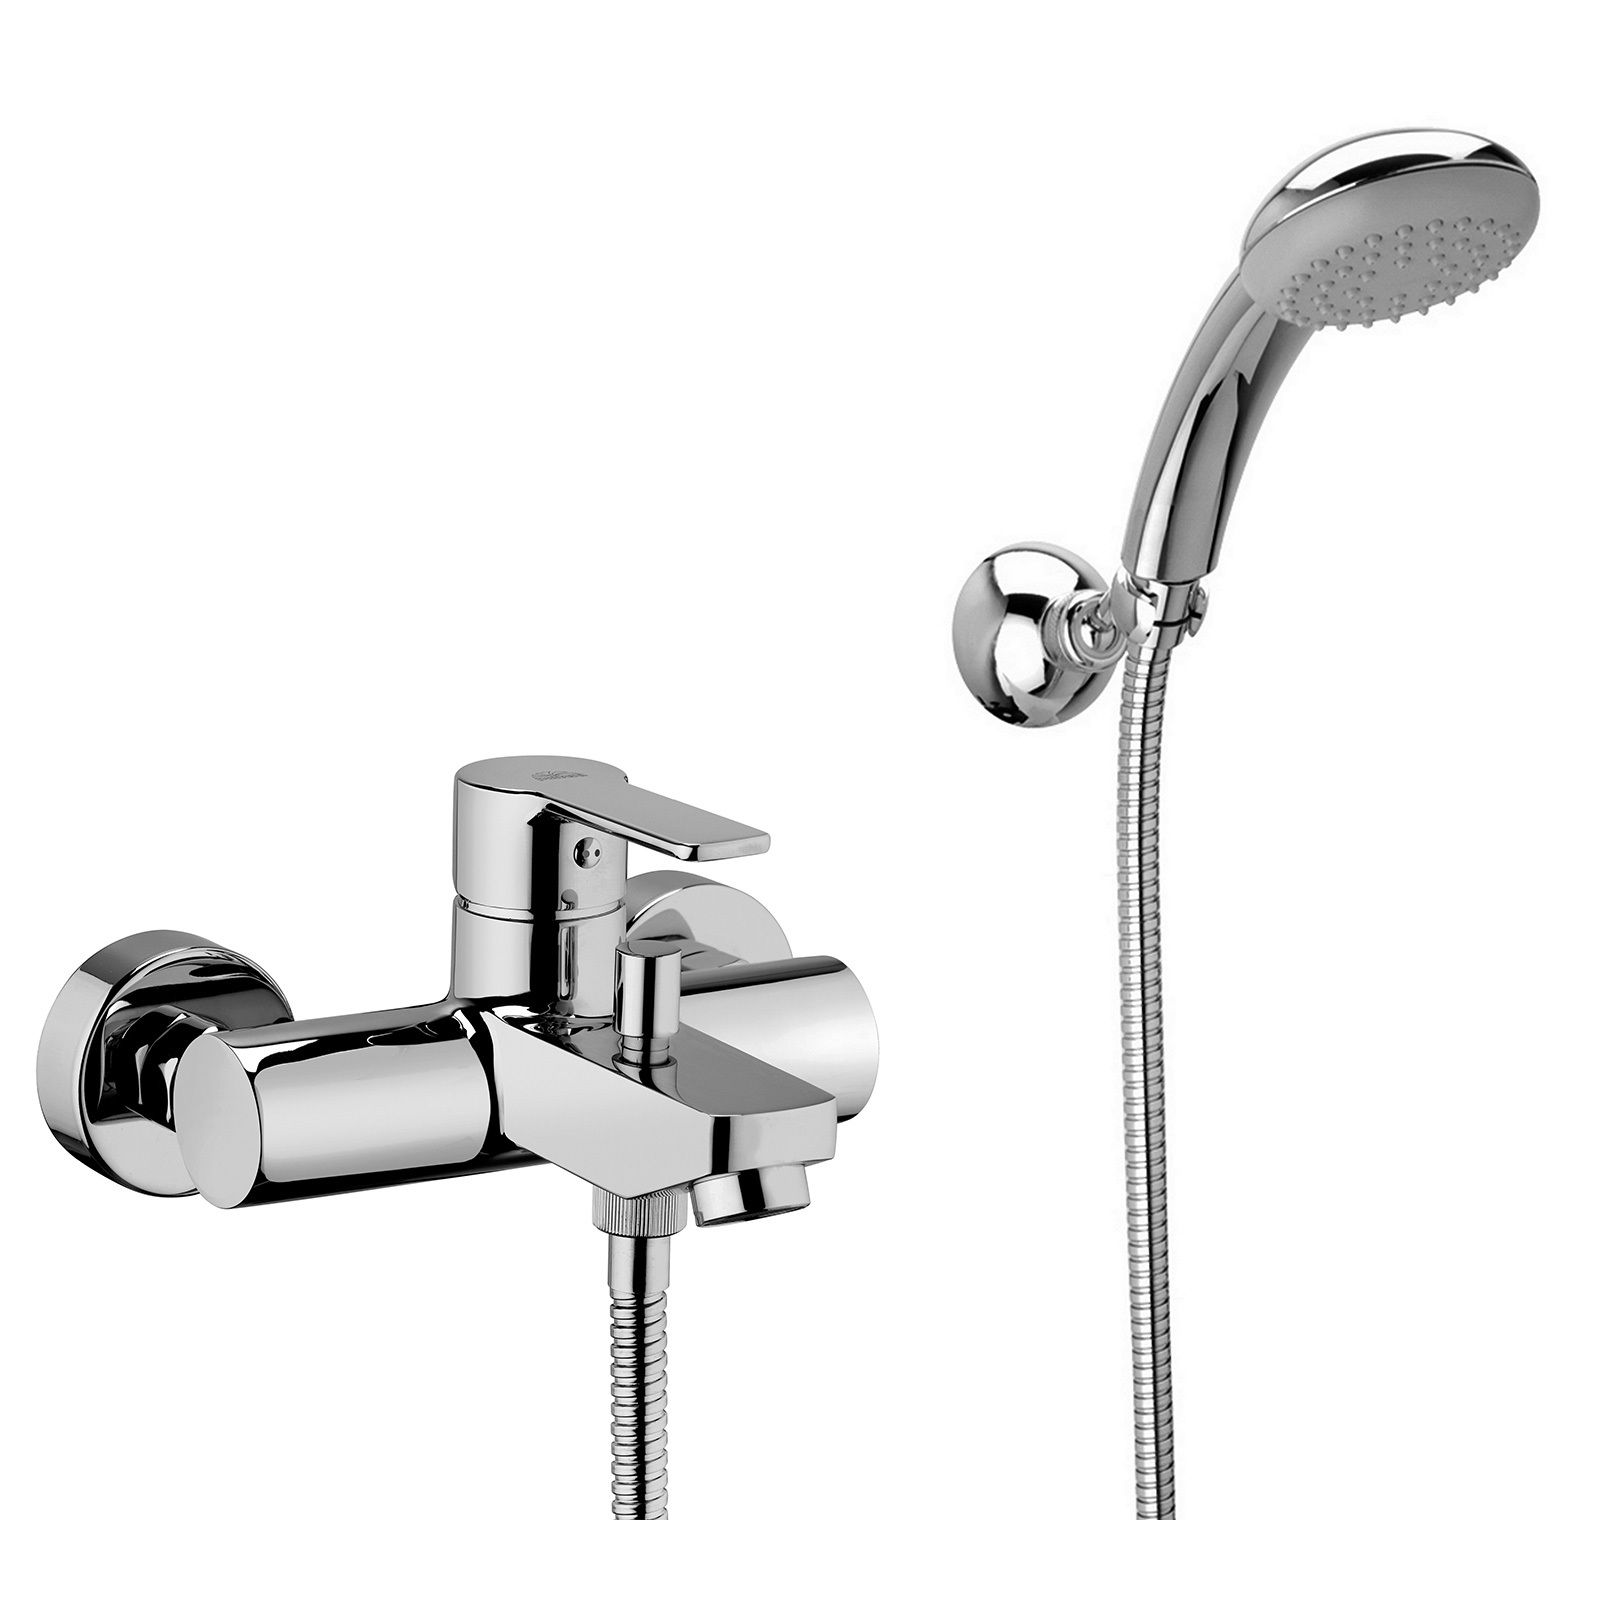 paffoni mixer faucet for bathtub with articulated wall support handheld shower and flexible hose rb028